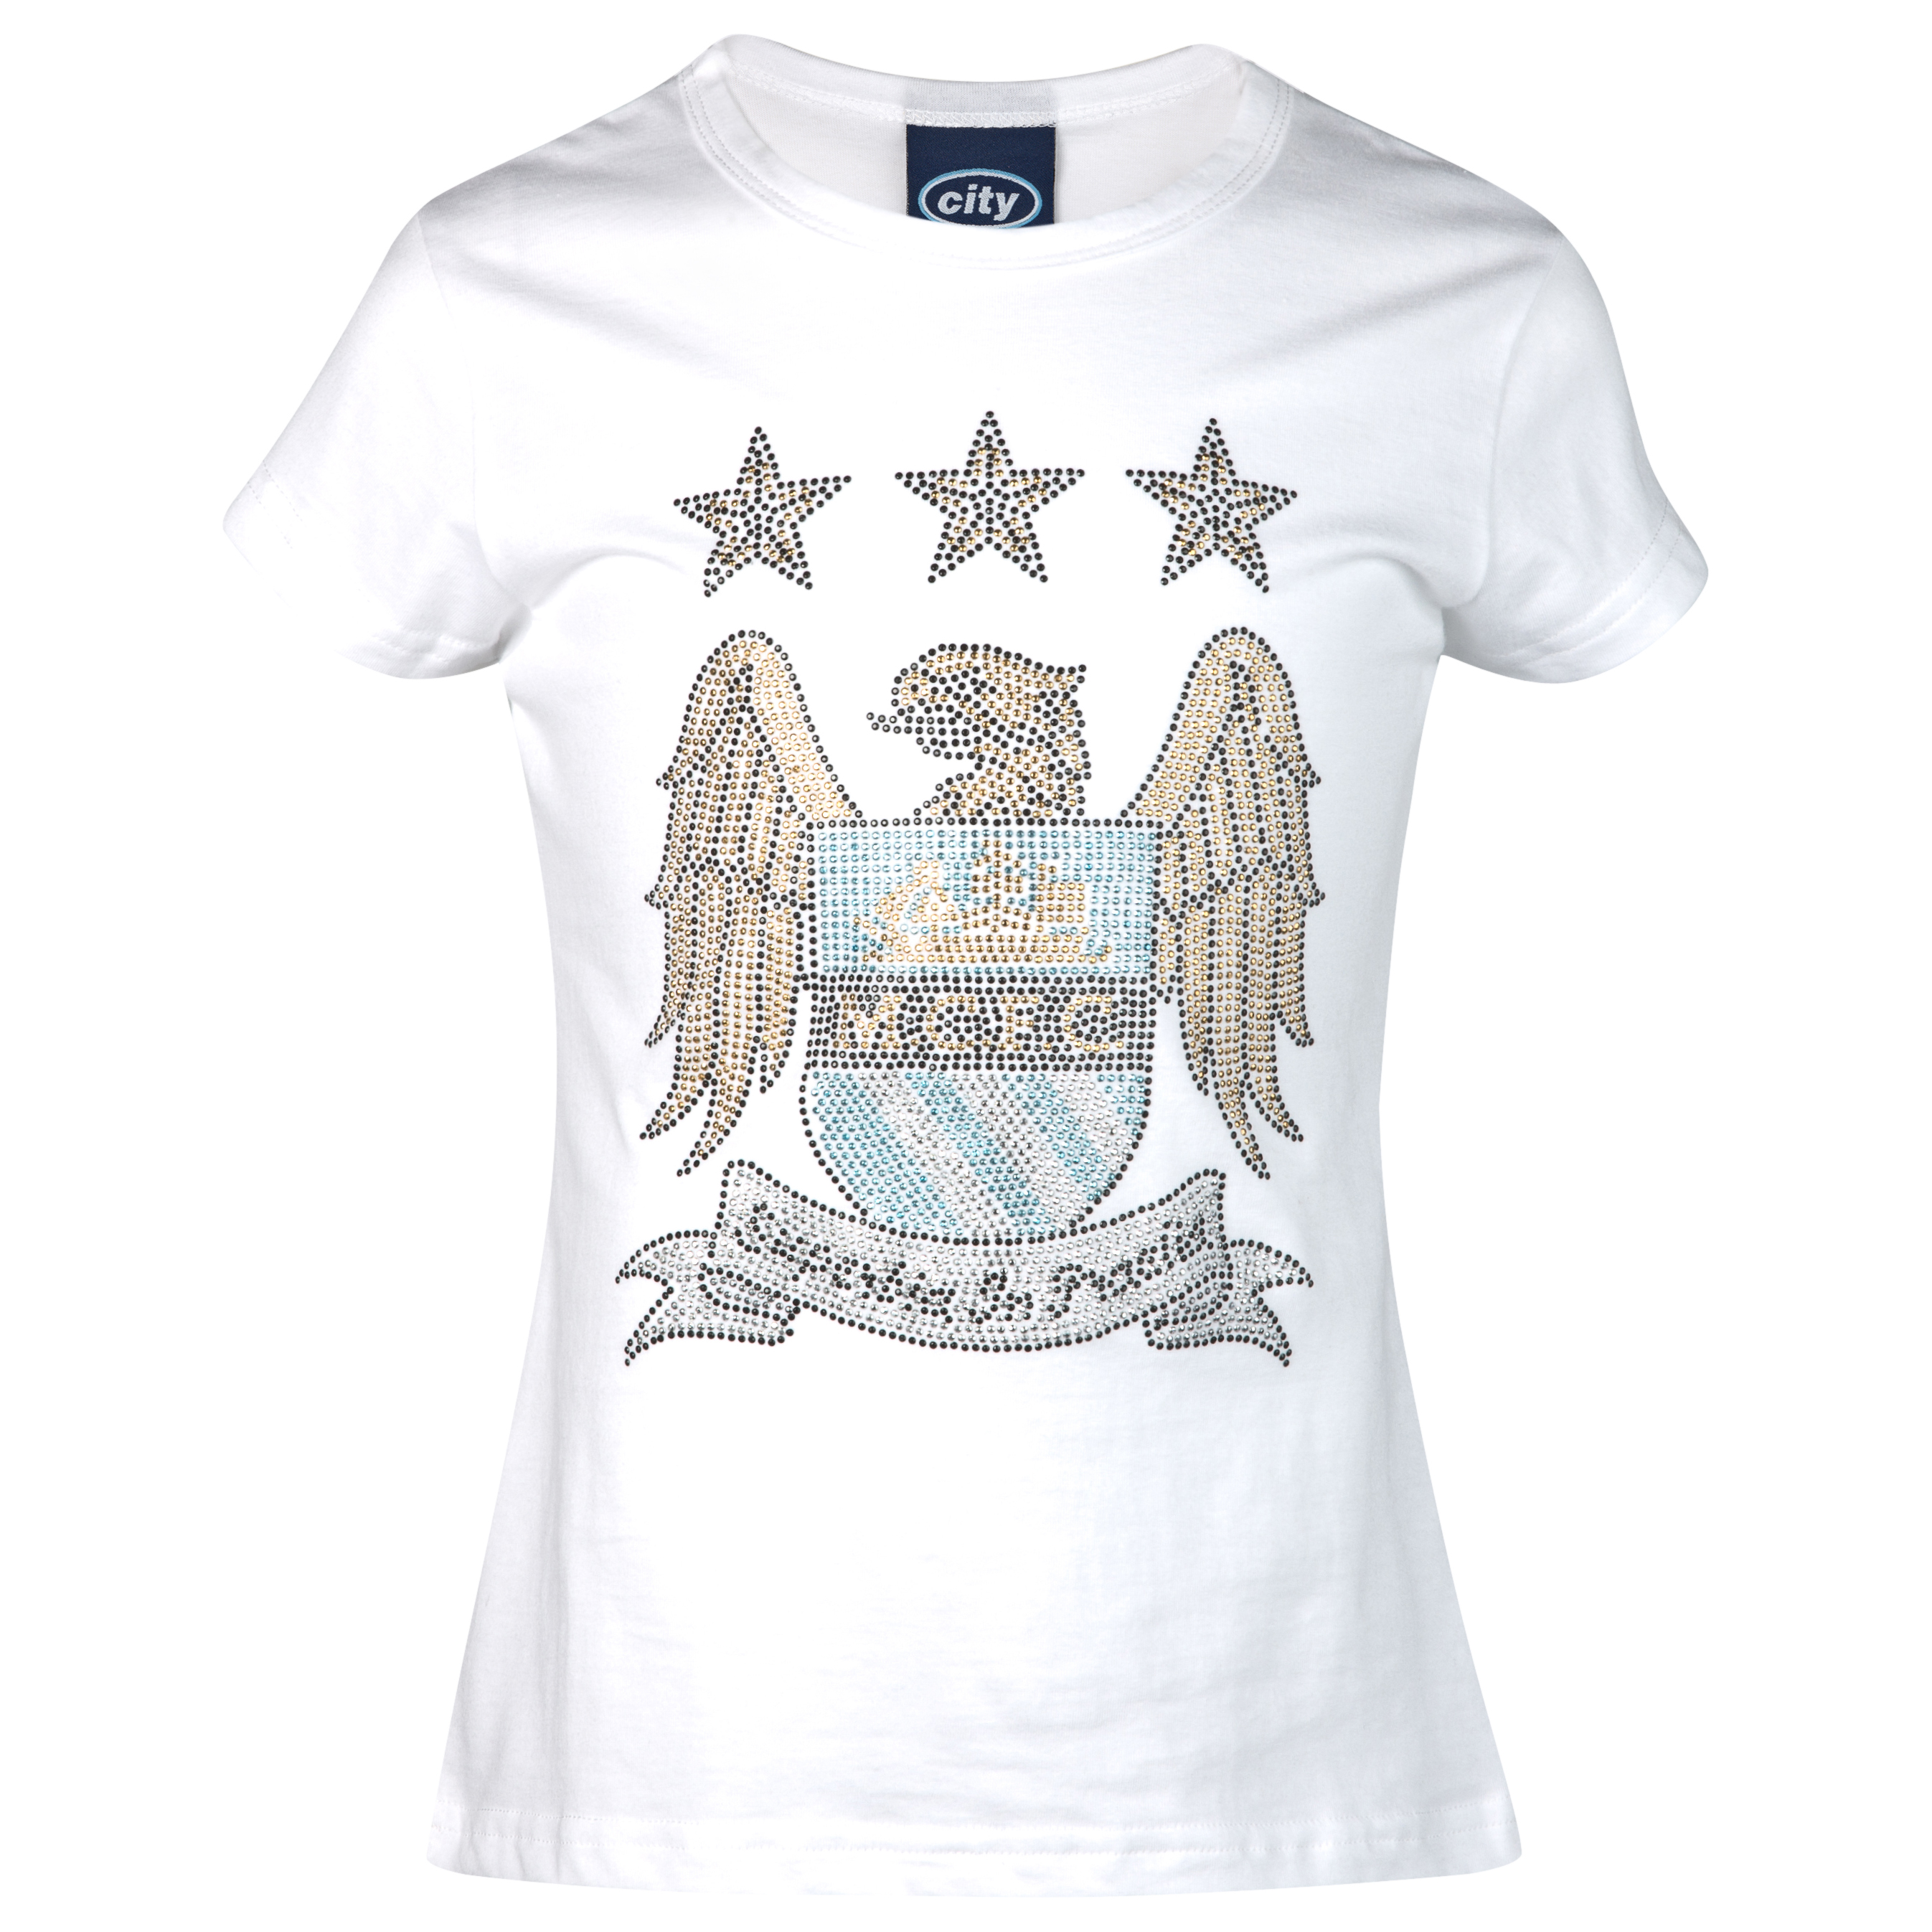 Manchester City Rhinestone T-Shirt - White - Older Girls